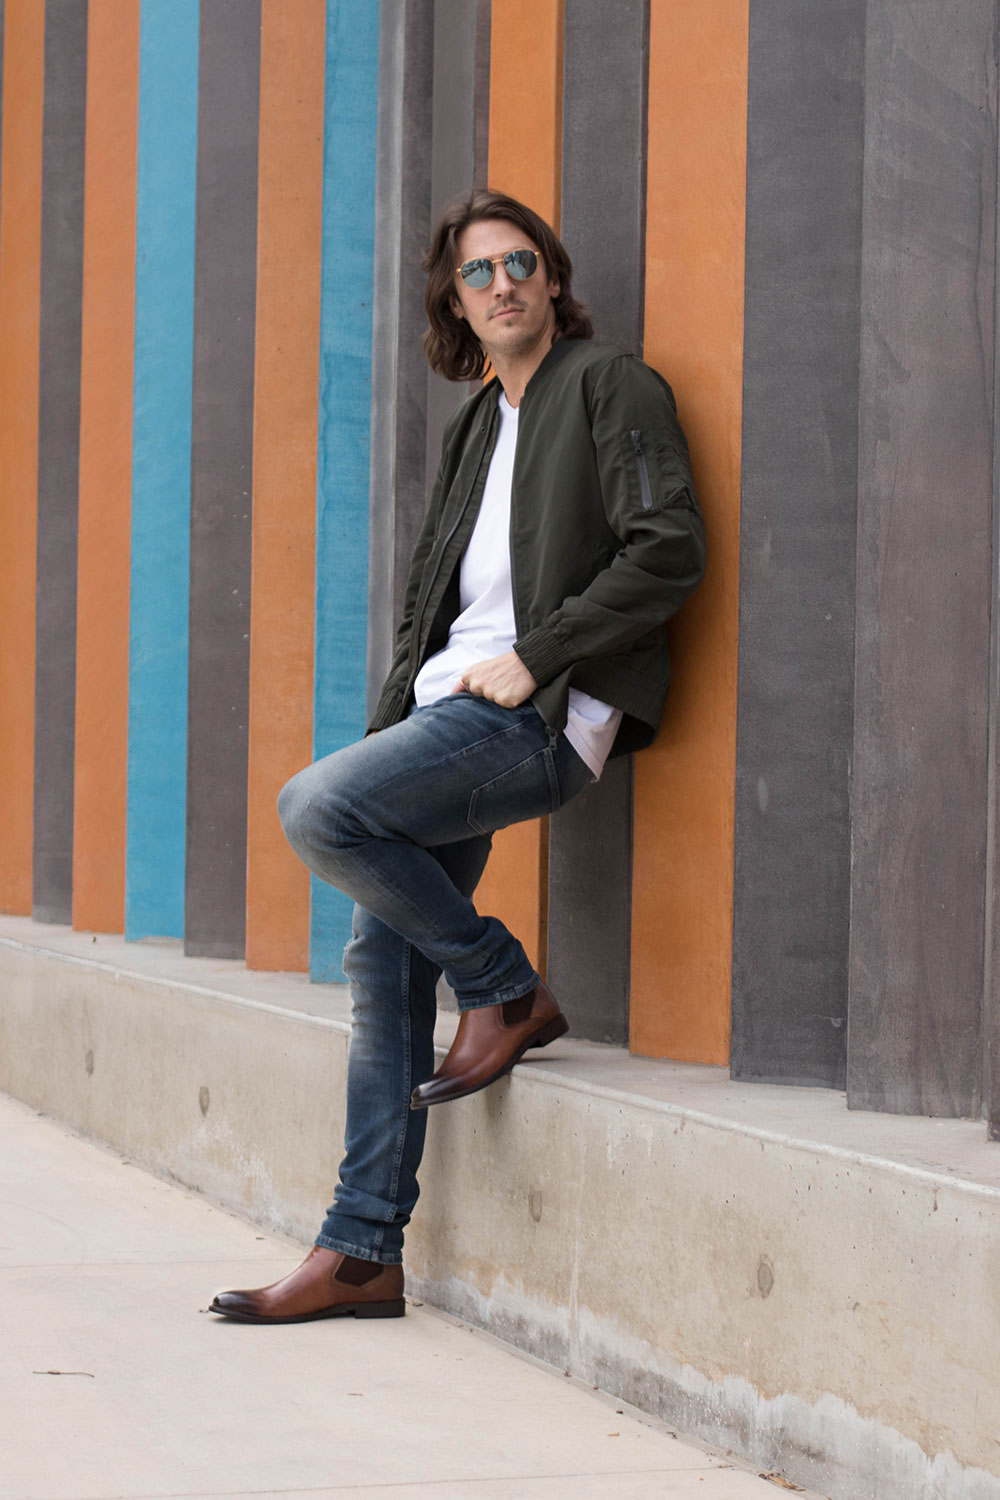 Steve Madden Brown Chelsea Boots with Jeans, White Shirt and Green Bomber Jacket